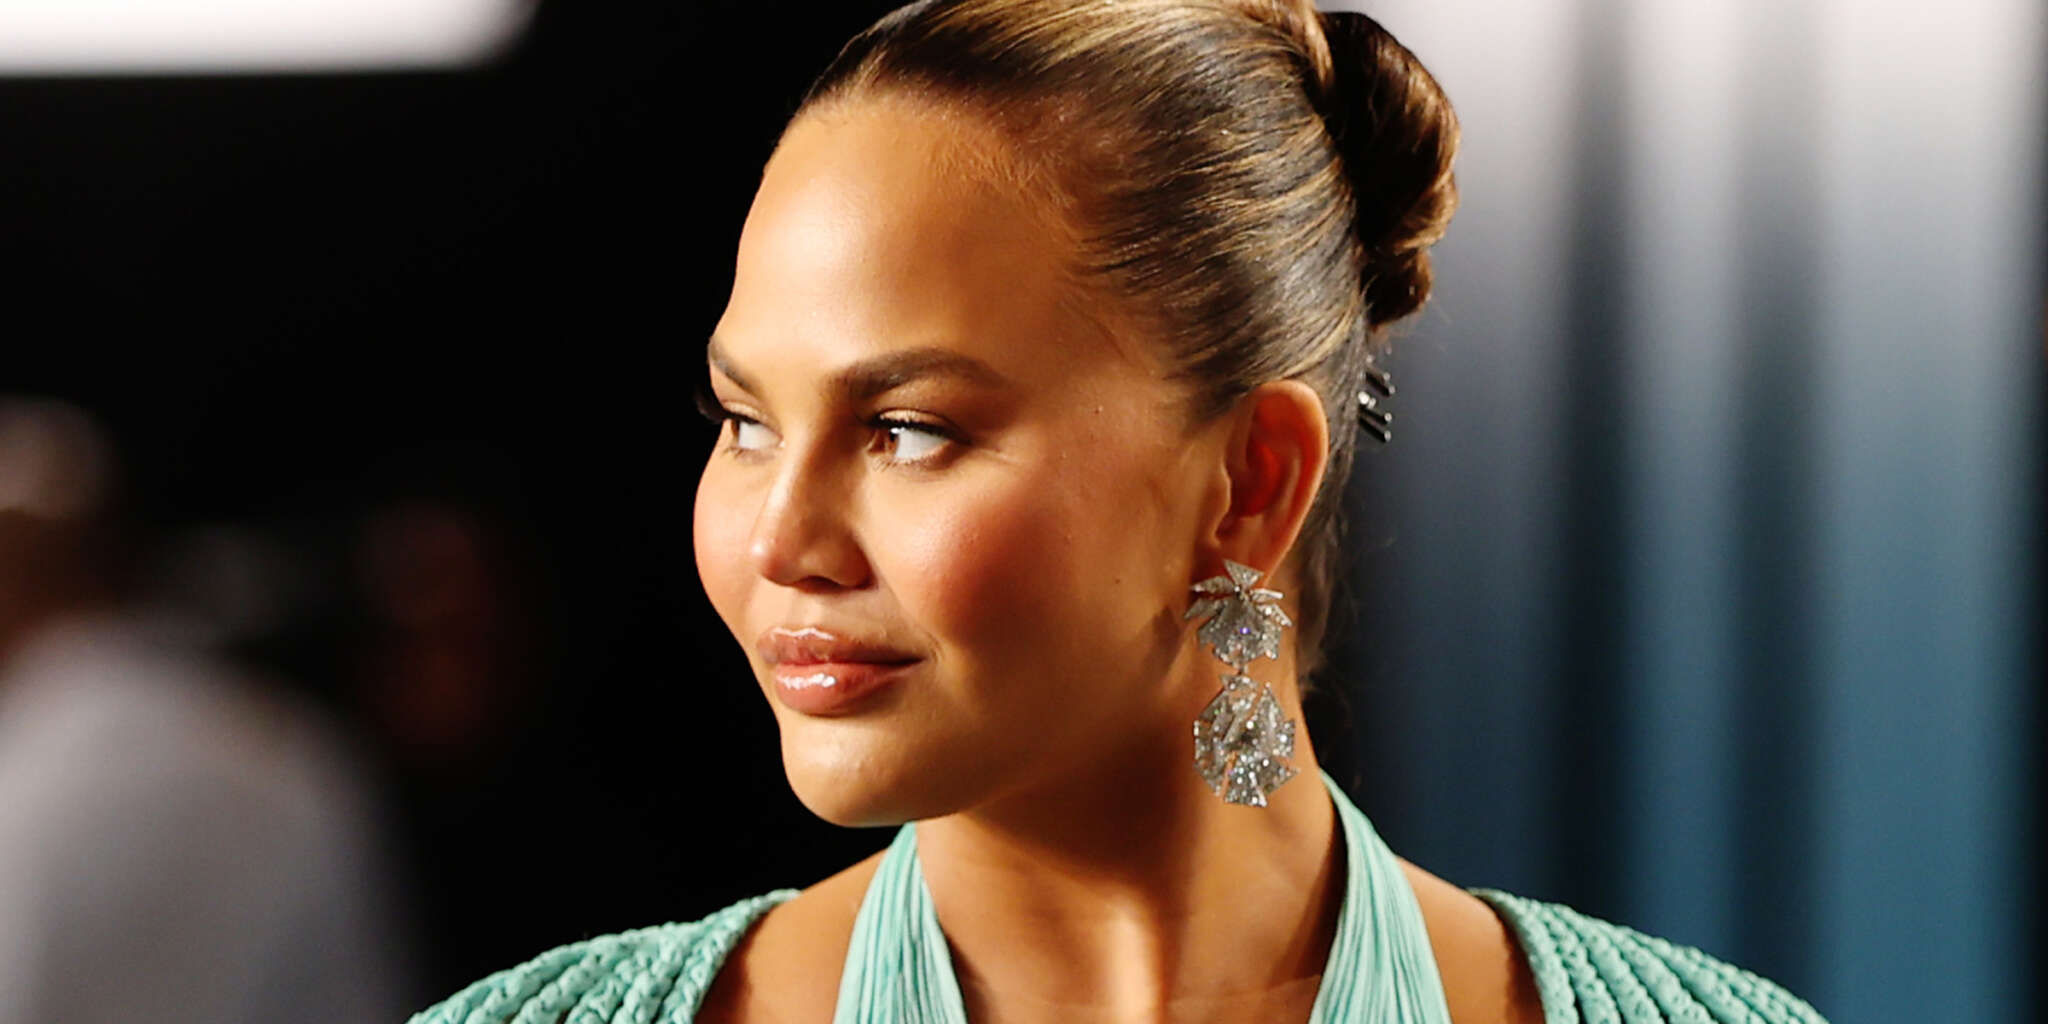 """""""chrissy-teigen-documents-the-loss-of-one-of-her-teeth-after-biting-into-a-roll-up"""""""